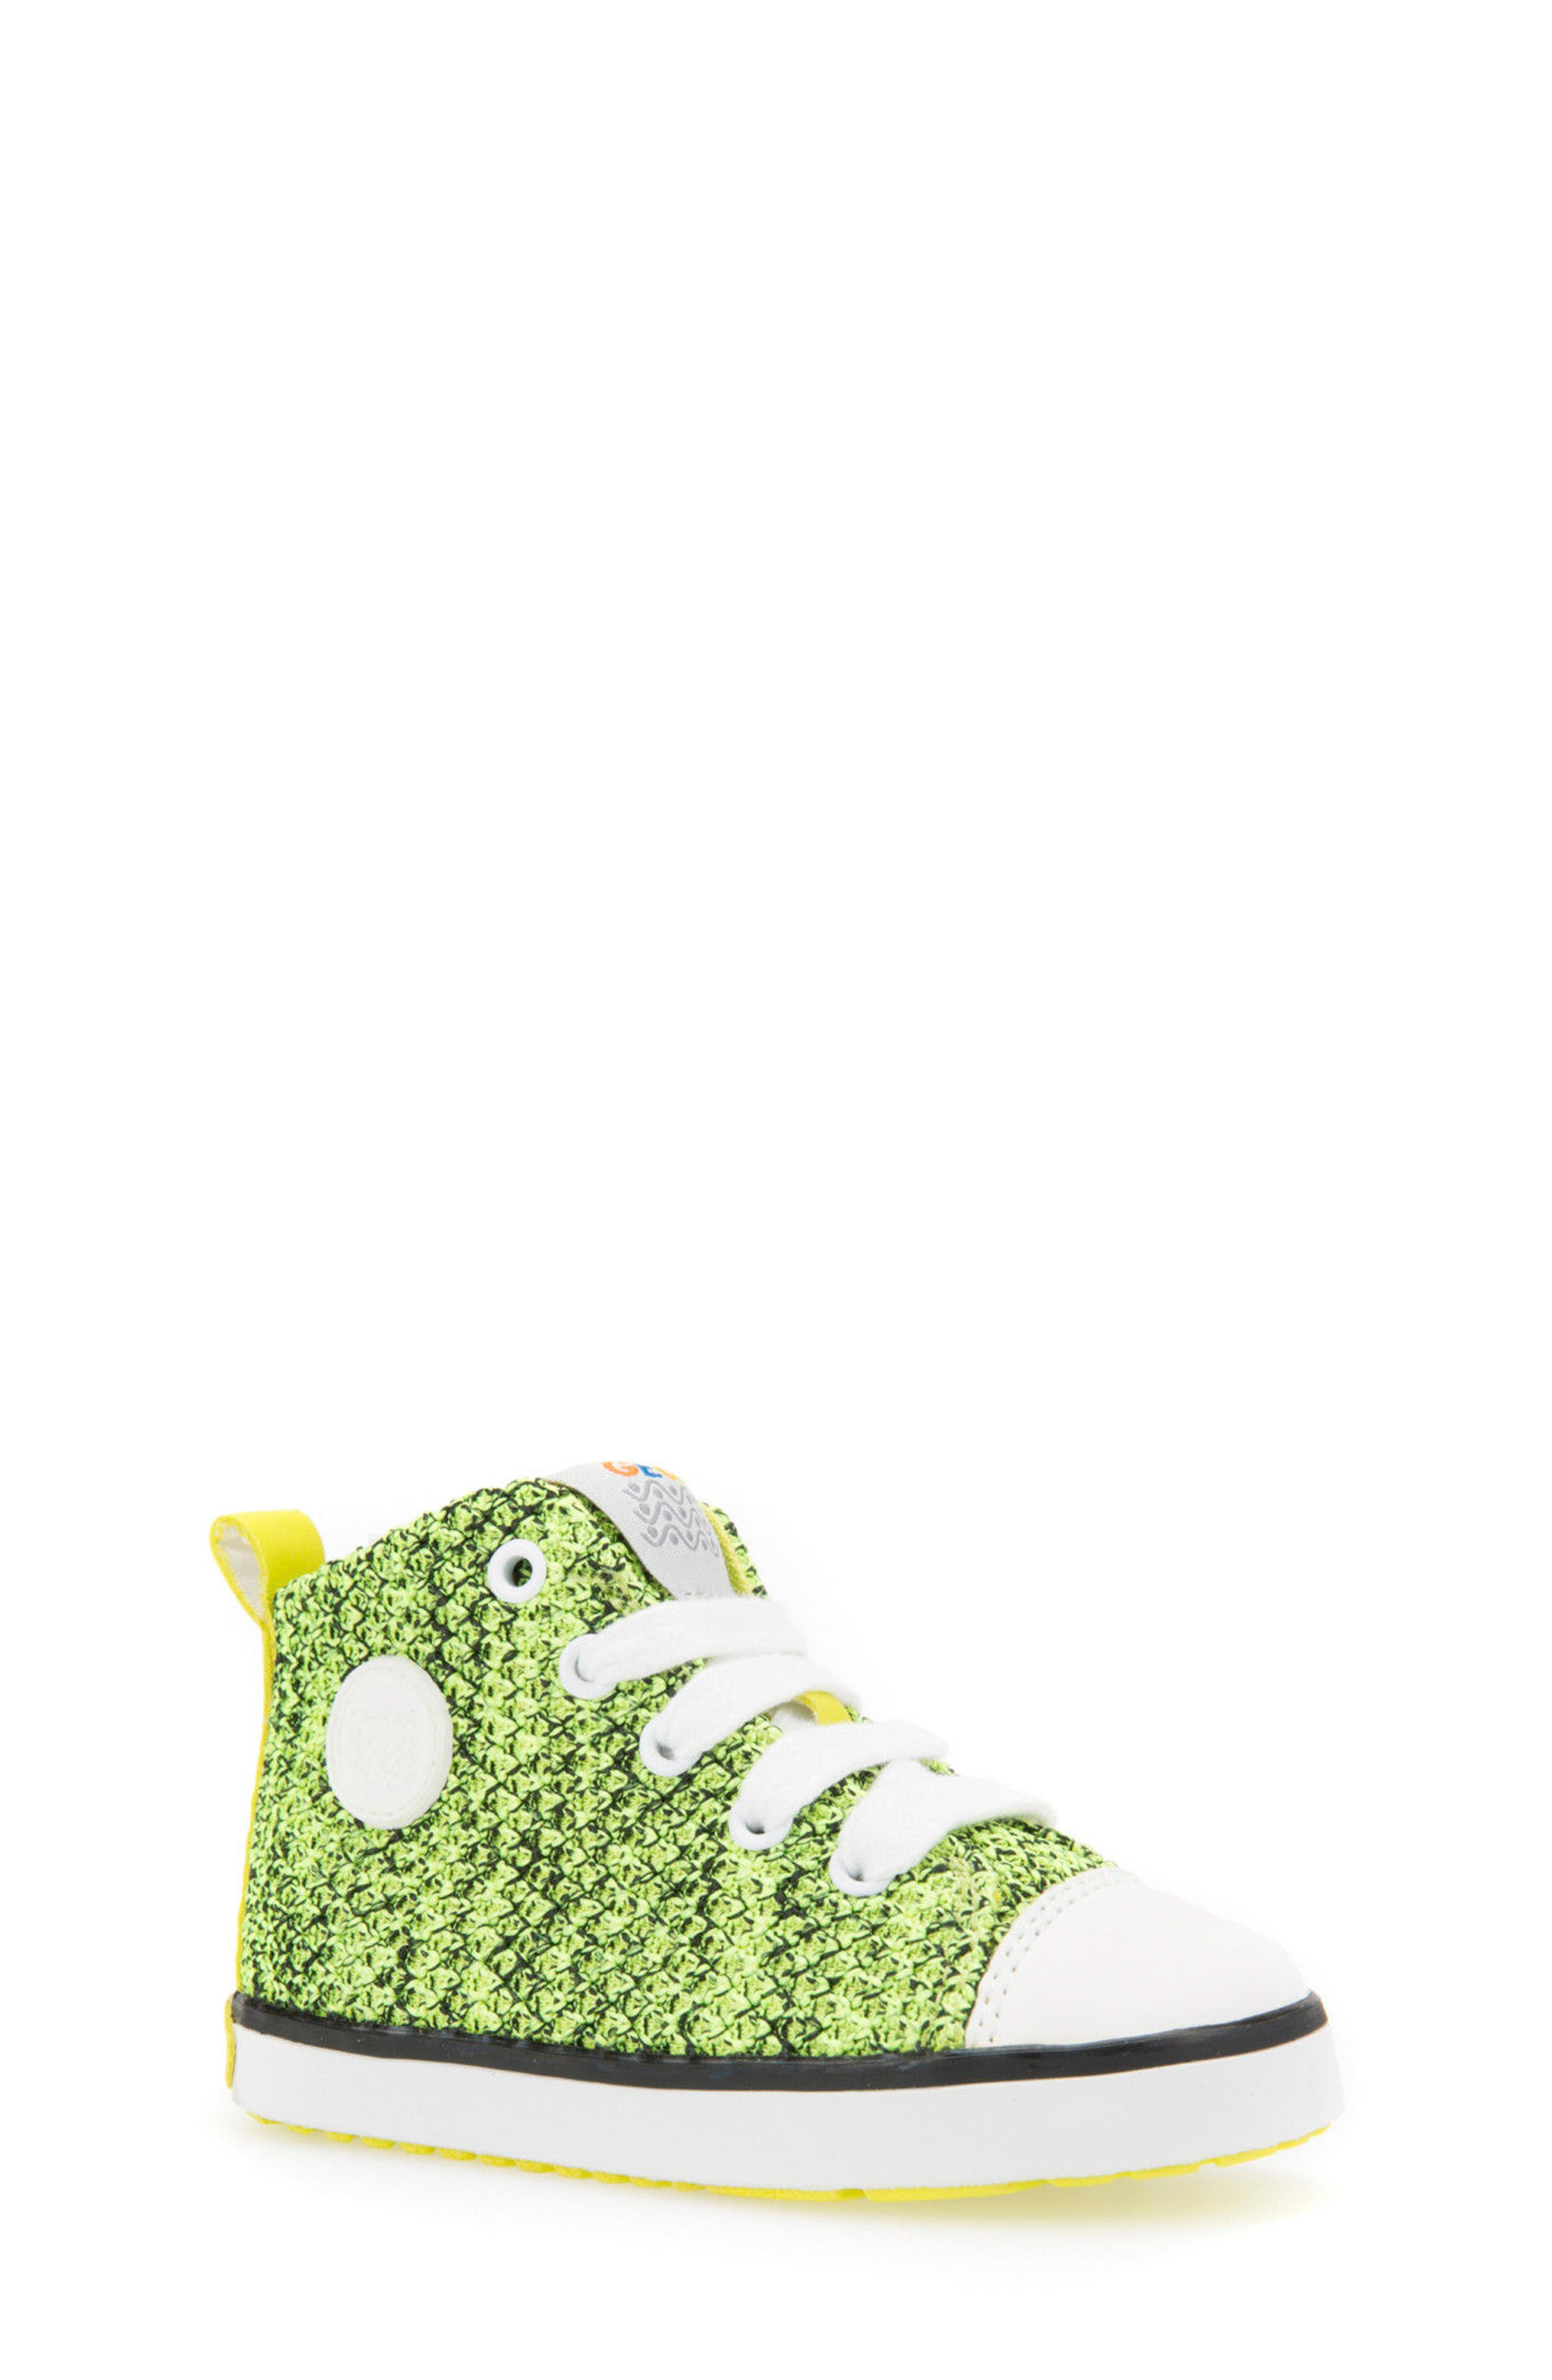 Kilwi Knit High Top Sneaker,                             Main thumbnail 1, color,                             LIME GREEN